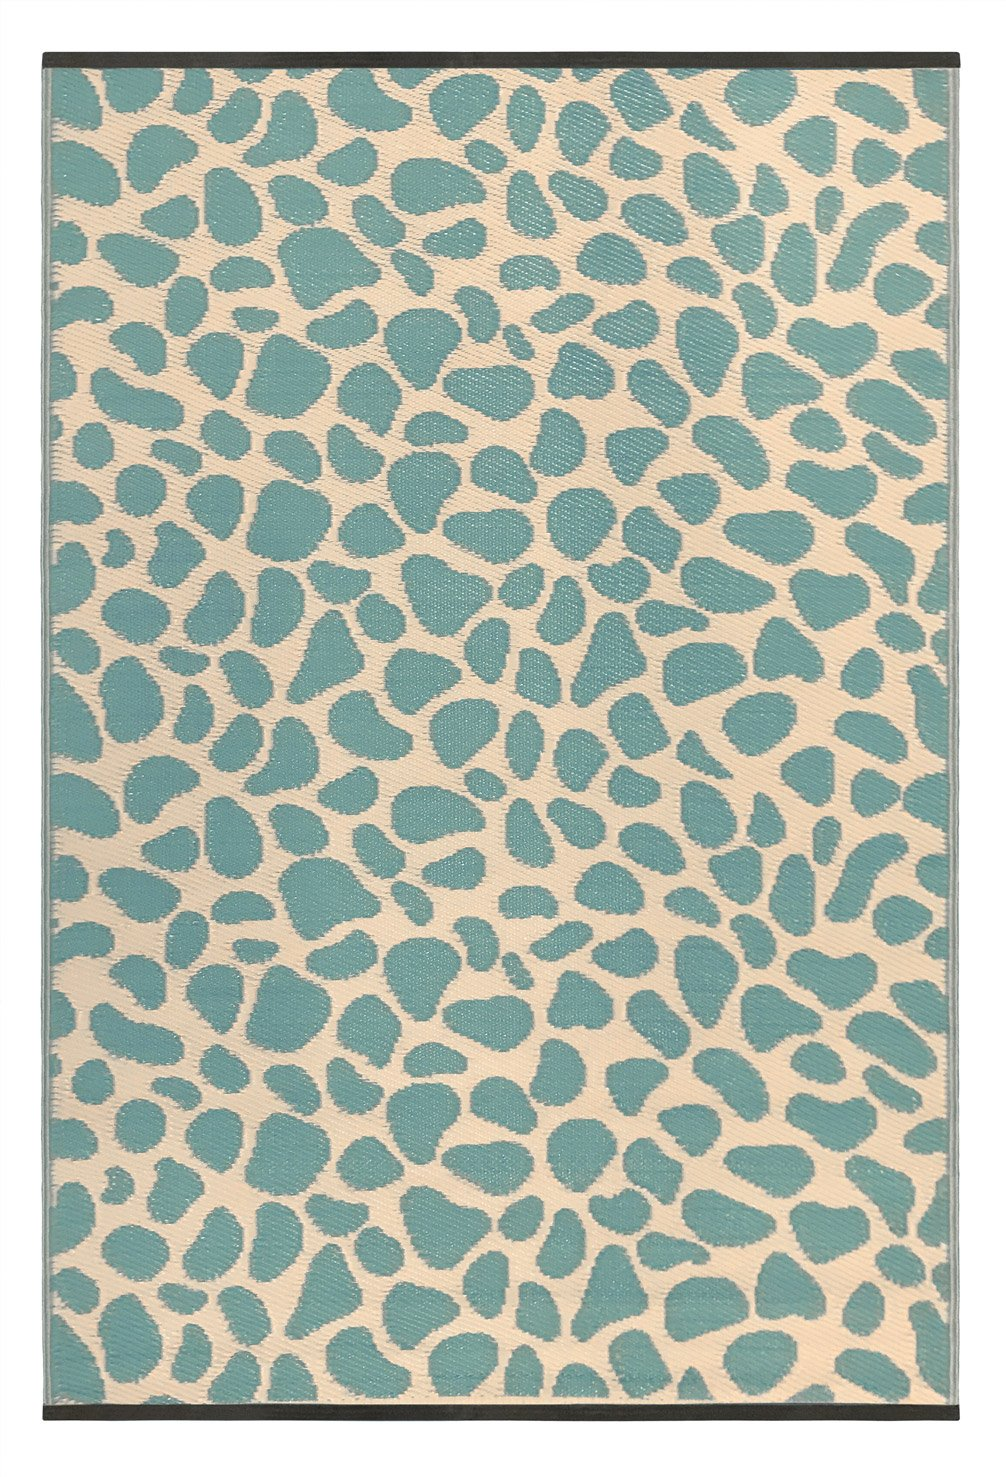 Outdoor/Light Weight/Reversible Eco Plastic Rugs (3 x 5, Green/Sand)